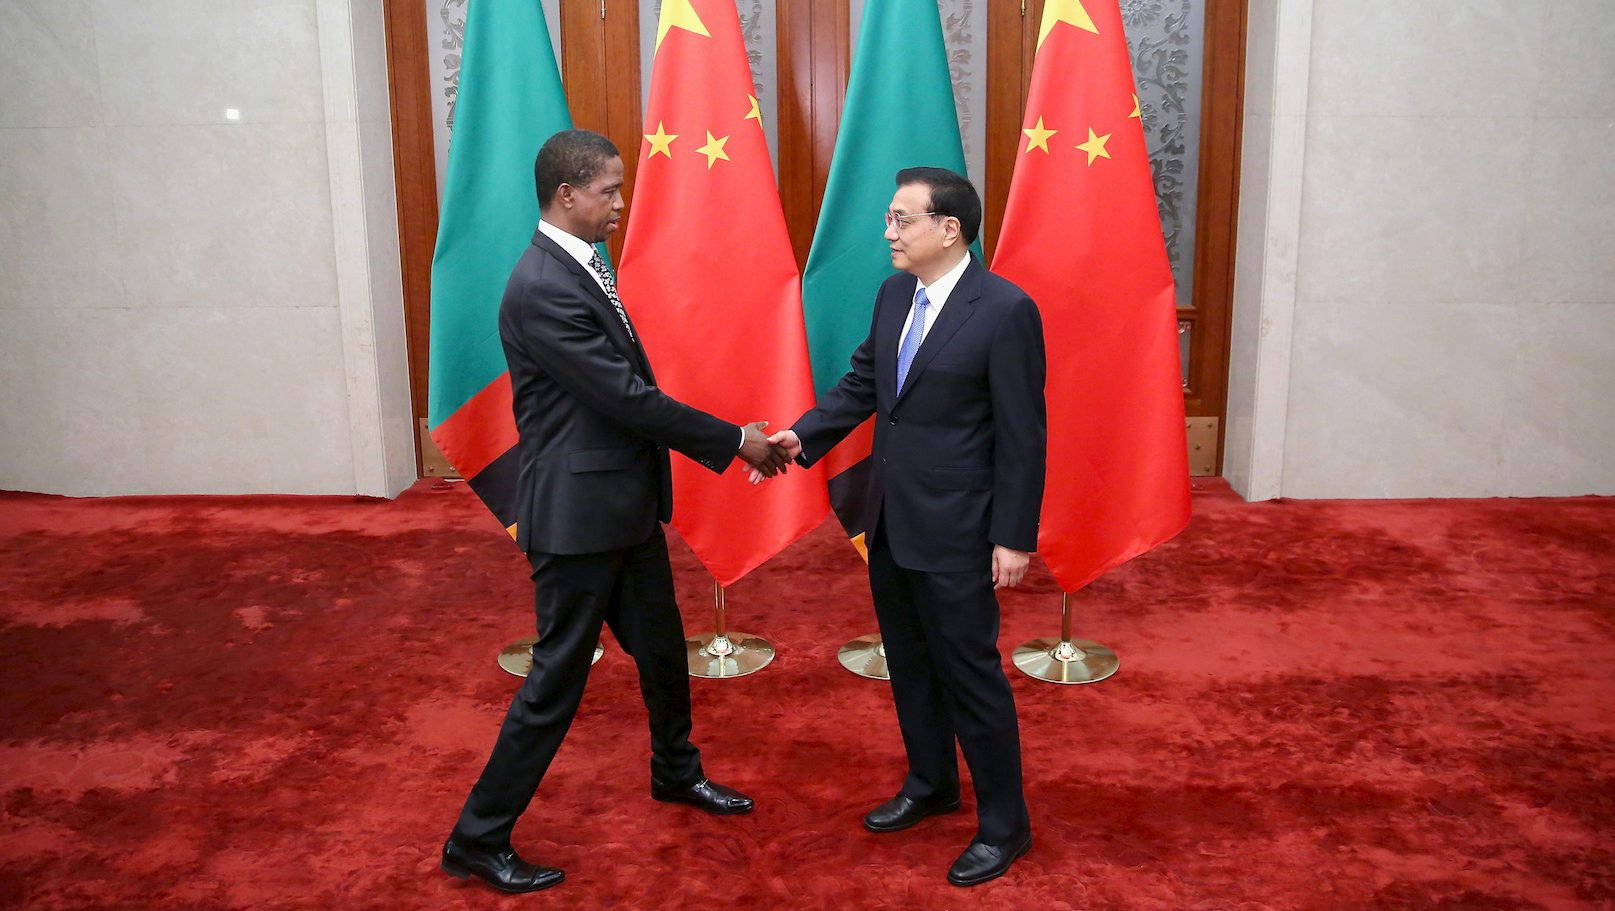 Chinese Premier Li Keqiang (R) shakes hands with Zambia's President Edgar Chagwa Lungu at the Great Hall of the People in Beijing March 30, 2015.